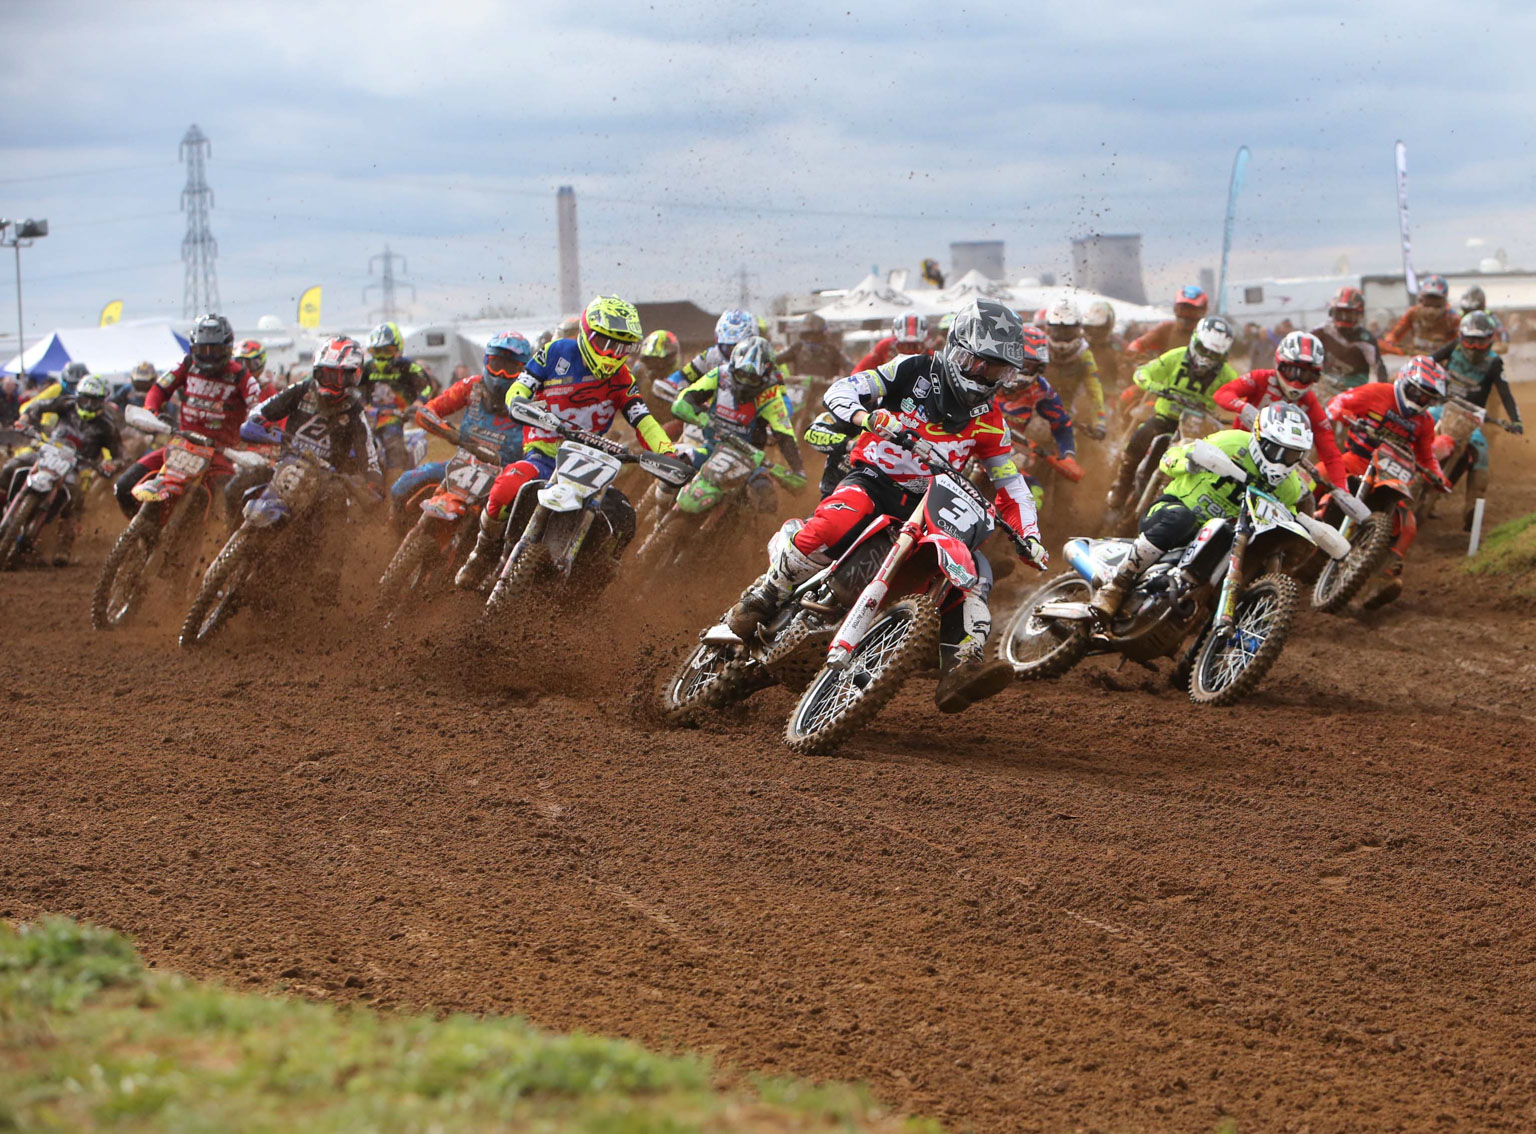 Josh Gilbert's training with the Buildbase Honda team is paying off. Here he holeshots an MX2 race from Mel Pocock and held on for two runner-up spots.